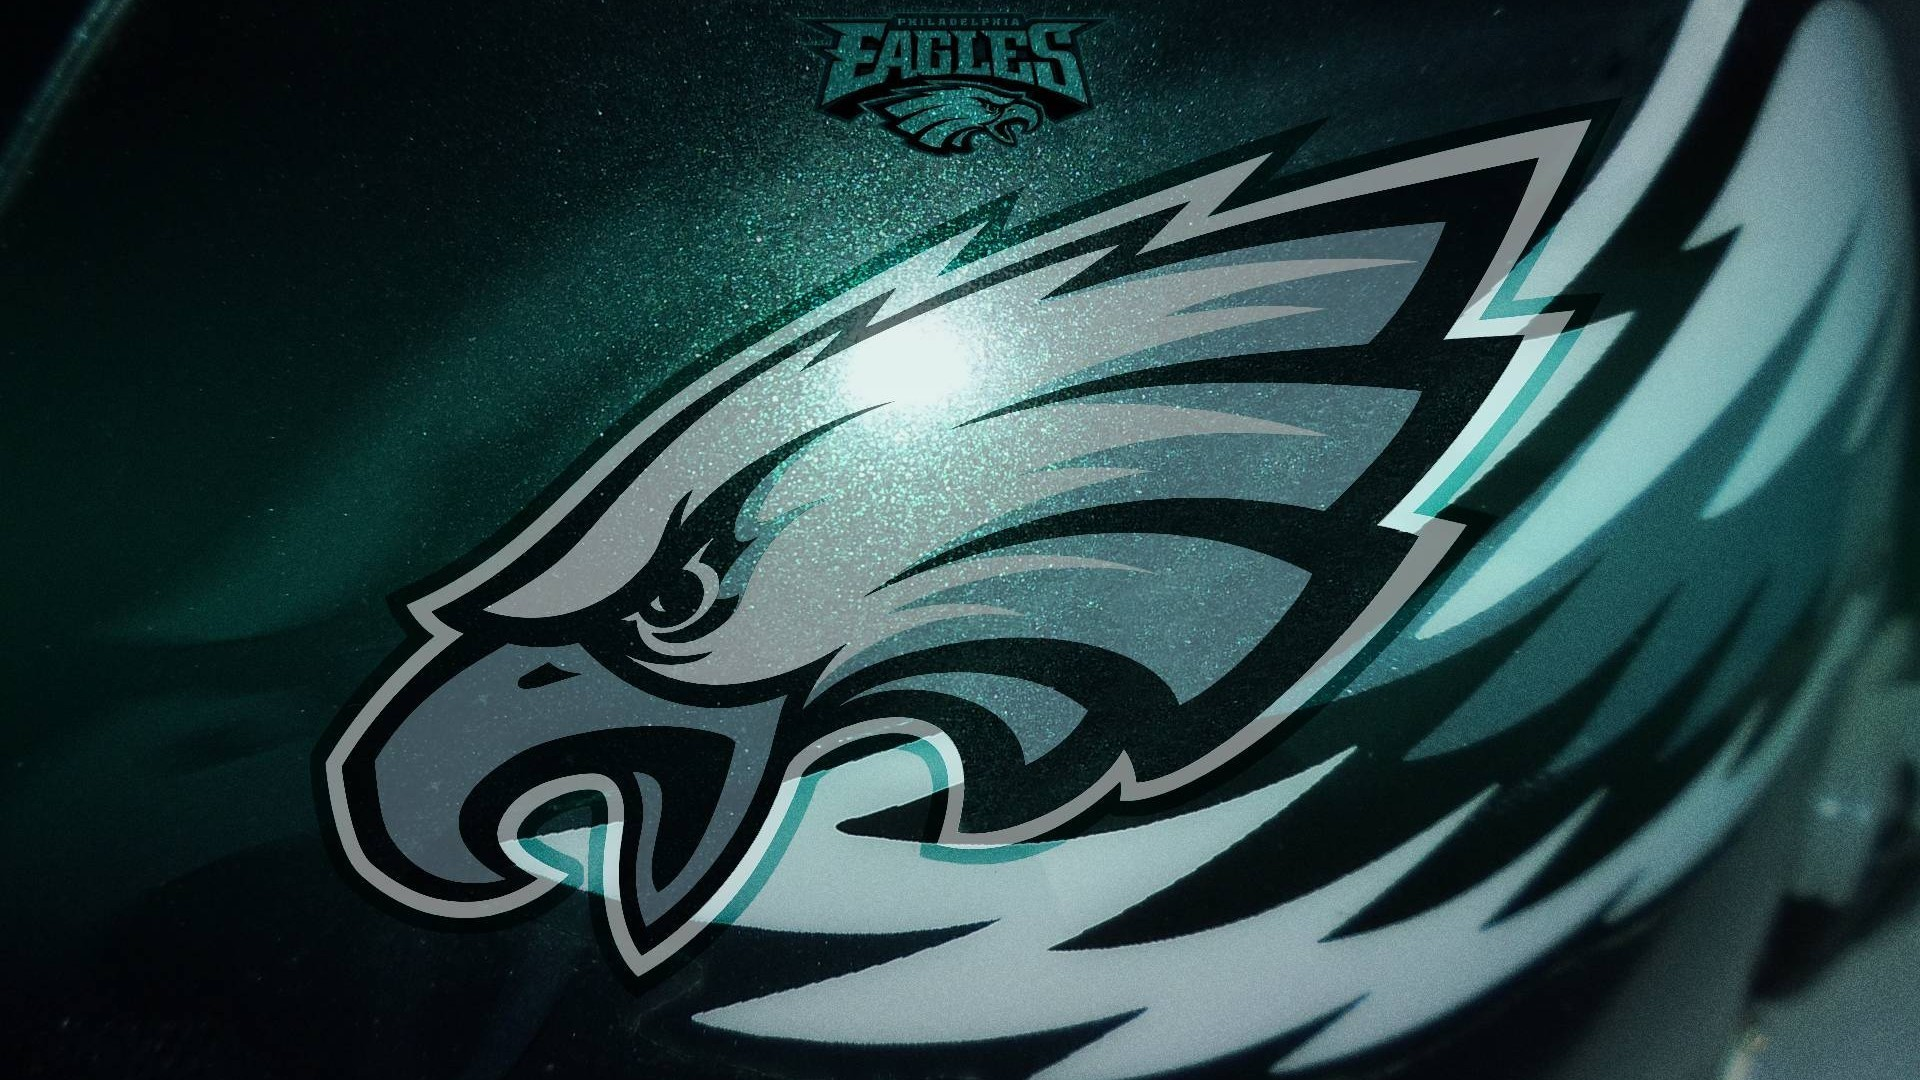 1920x1080  Philadelphia Eagles Wallpaper HD · 7 · Download · Res: 1080x1920  ...